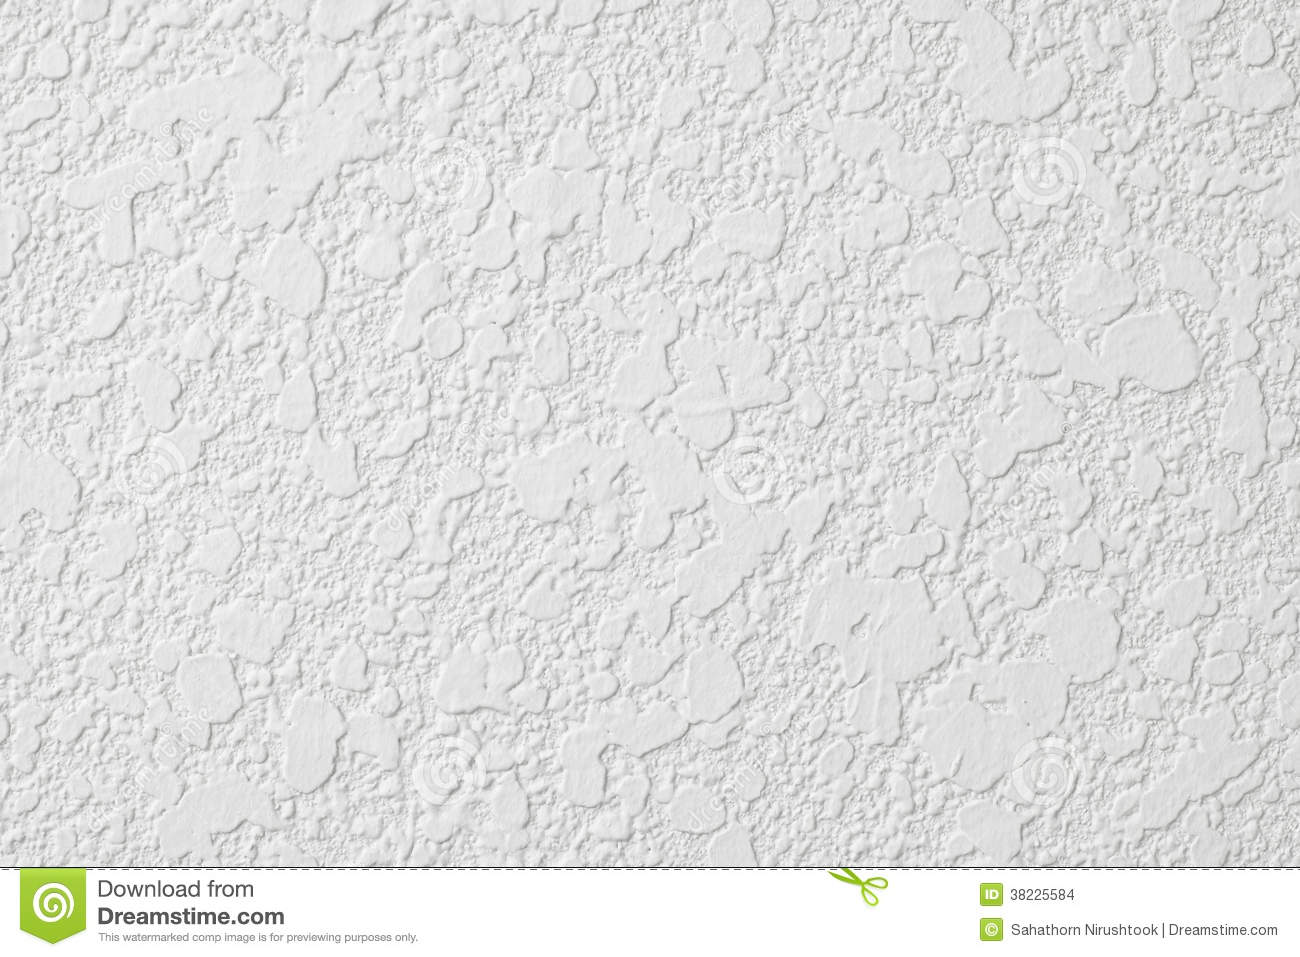 Textura blanca moderna de la pared usando como fondo for Textura de pared